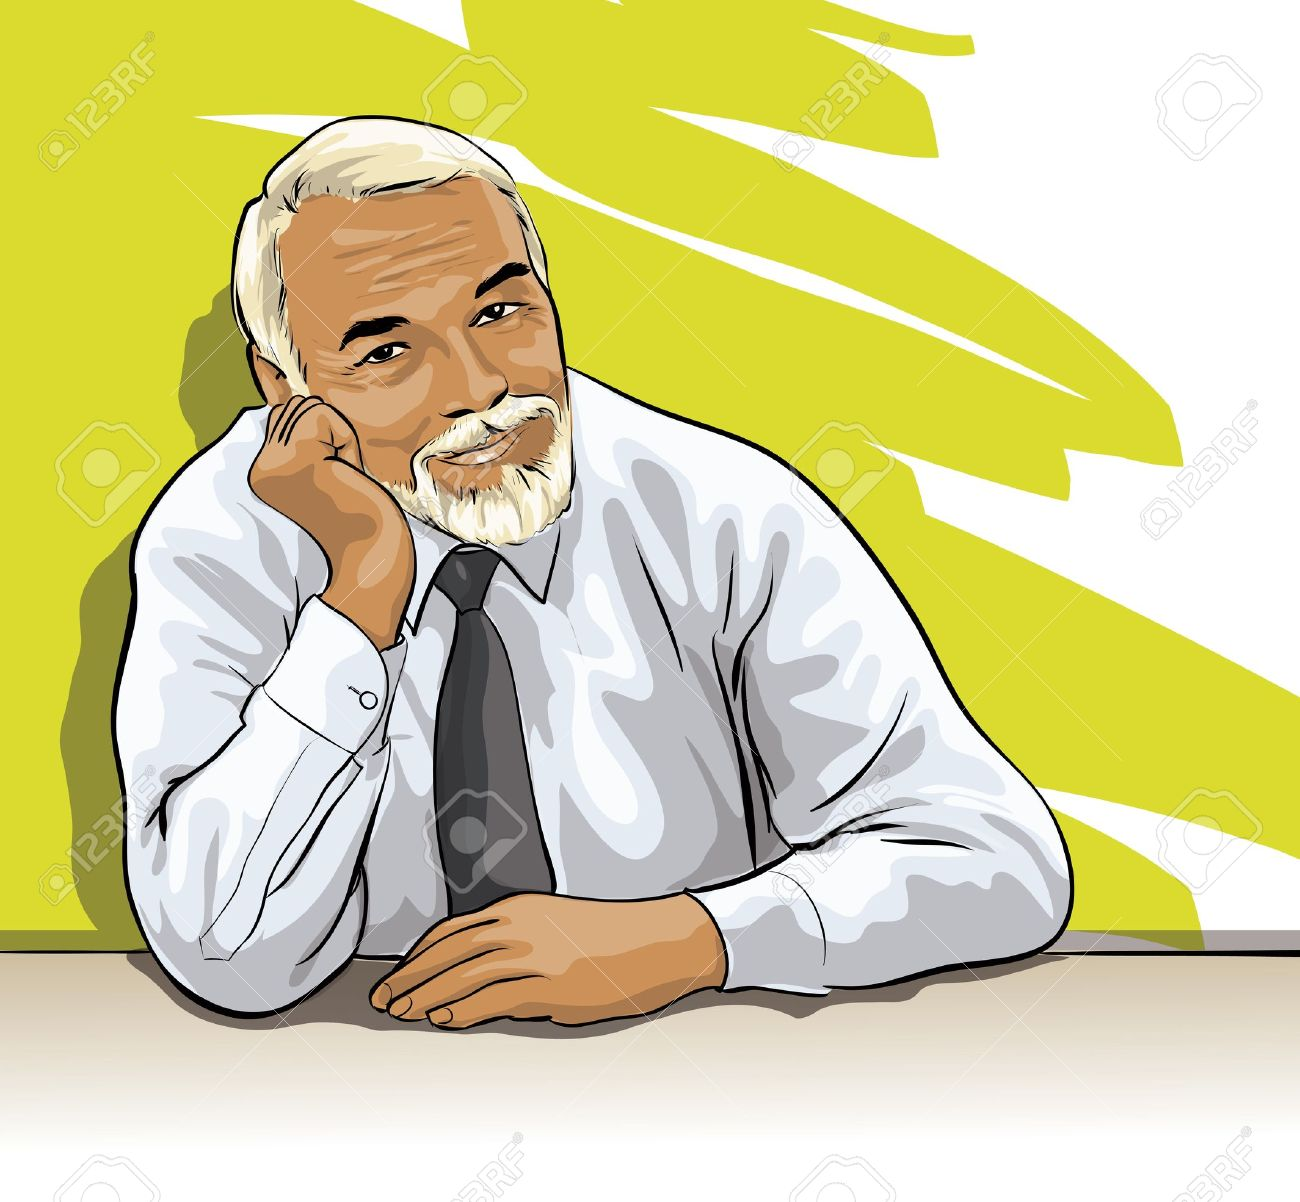 Wise Old Man With Beard Clipart.